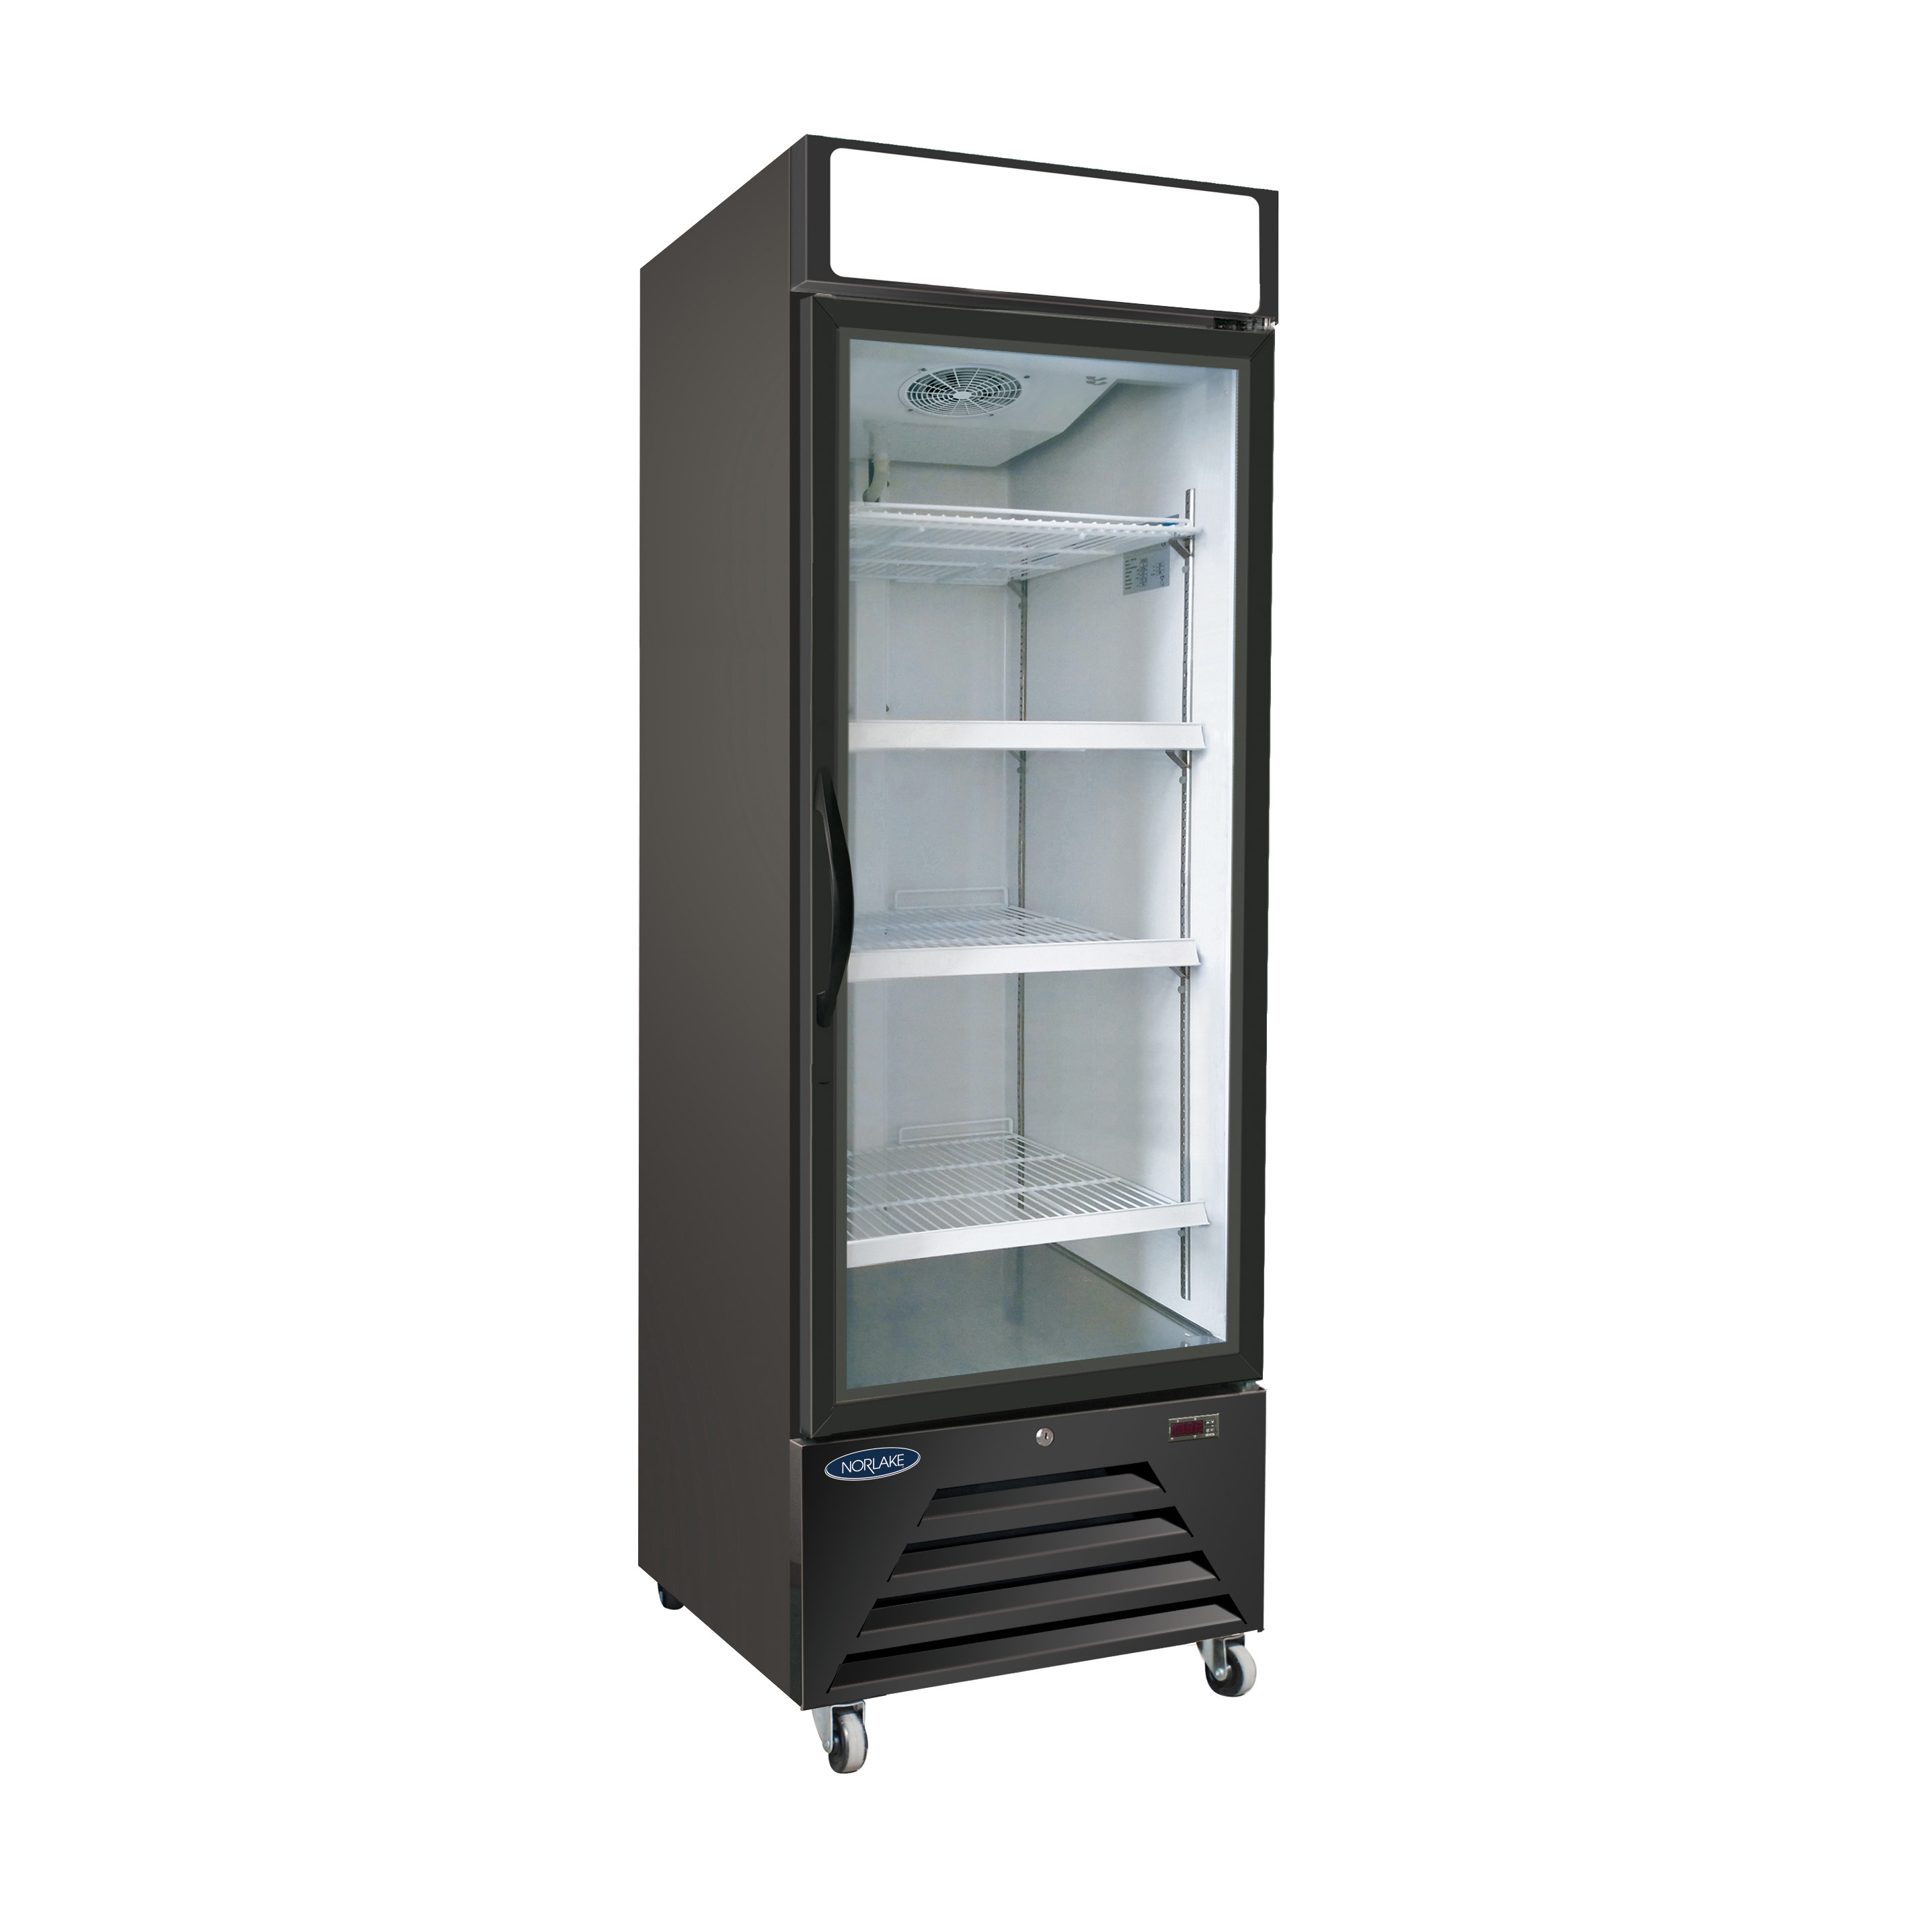 Nor-Lake NLRGM23HB refrigerator, merchandiser